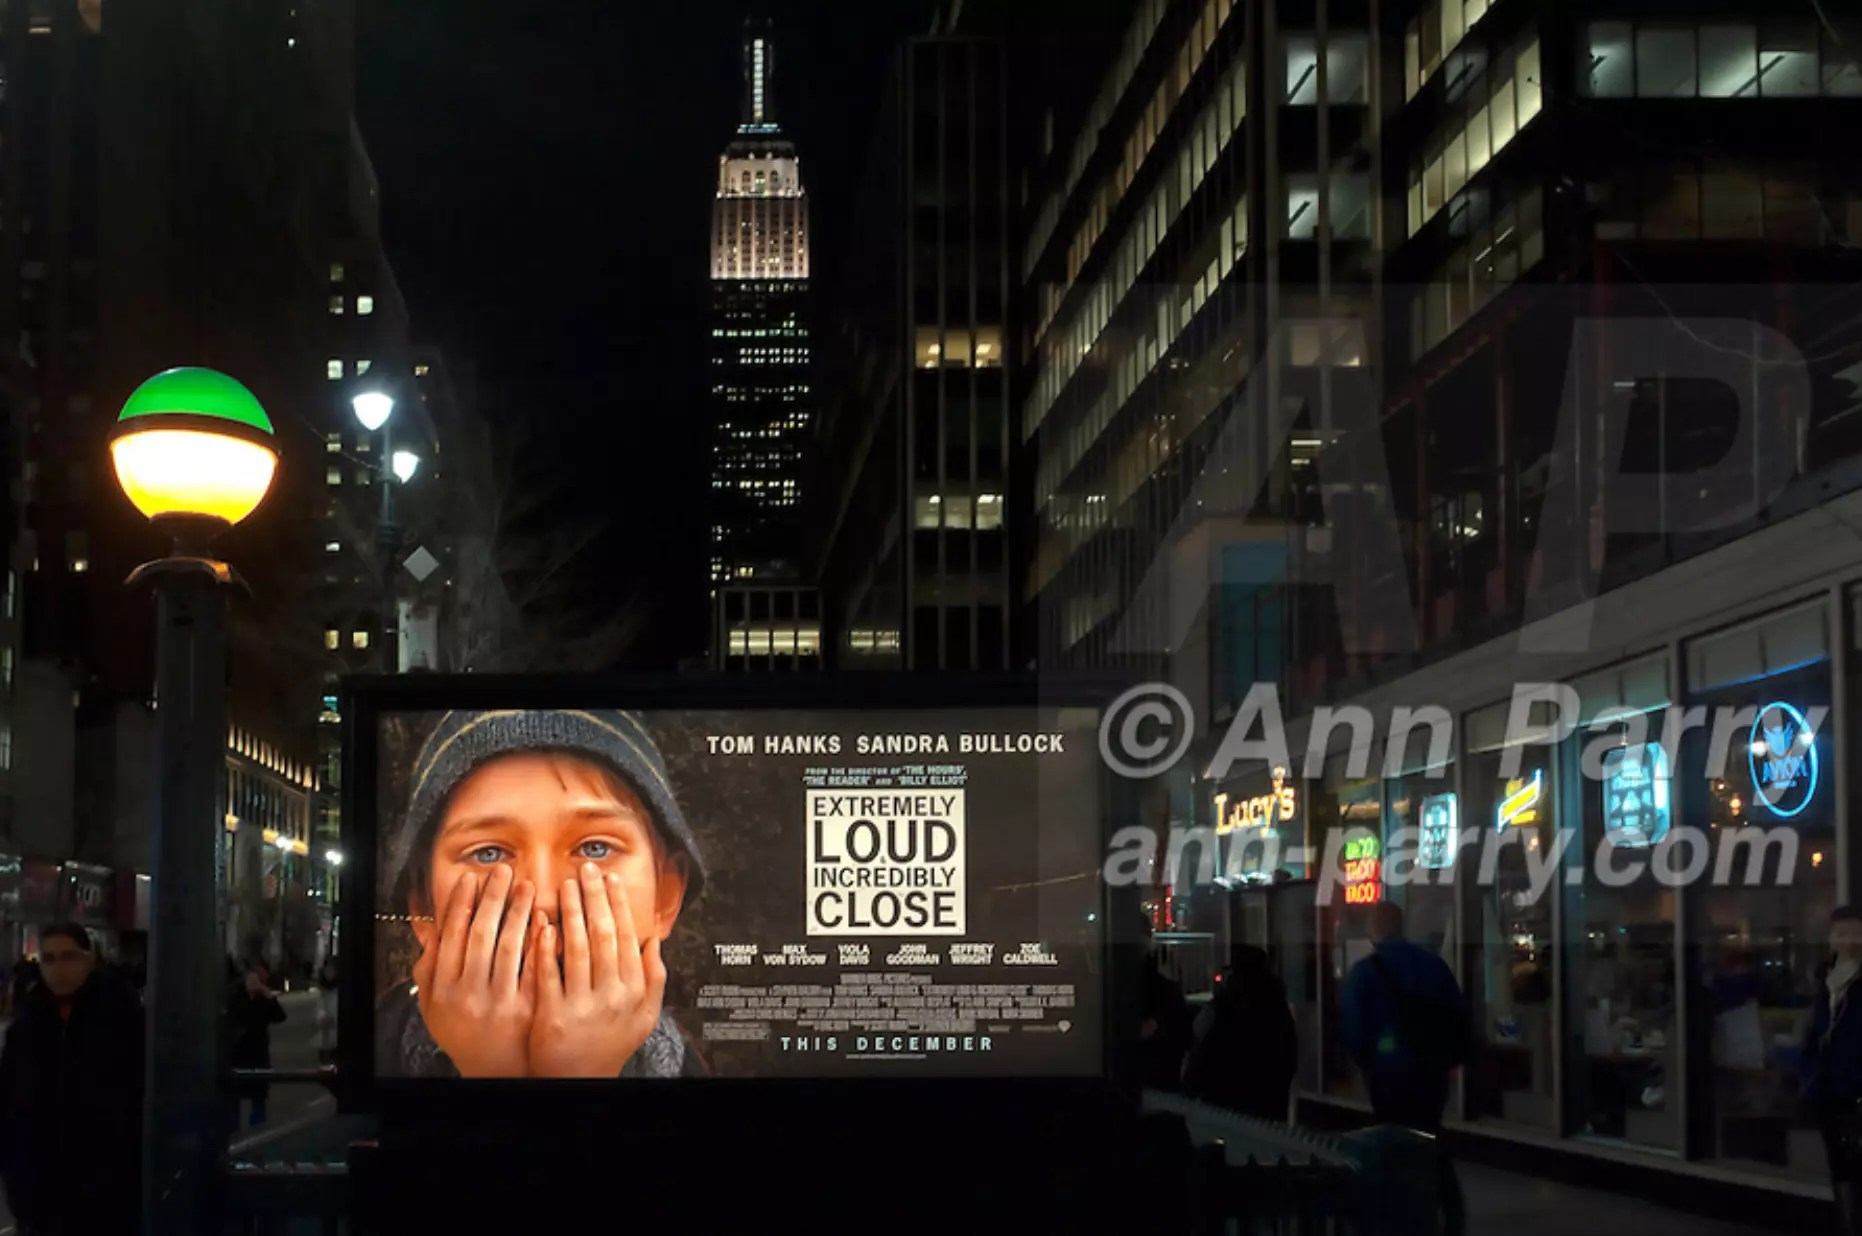 "Manhattan, NY, USA - January 9, 2012: Movie poster ""Extremely Loud & Incredibly Close"" hangs illuminated at night over Penn Station subway entrance with Empire State Building in background. Fictional movie is set at time of 9/11 terrorist attacks on Twin Towers in NYC. Green and yellow lit globe on post is at stairwell entrance to MTA (Metropolitan Transit Authority) 34 St. Penn Station subway station."